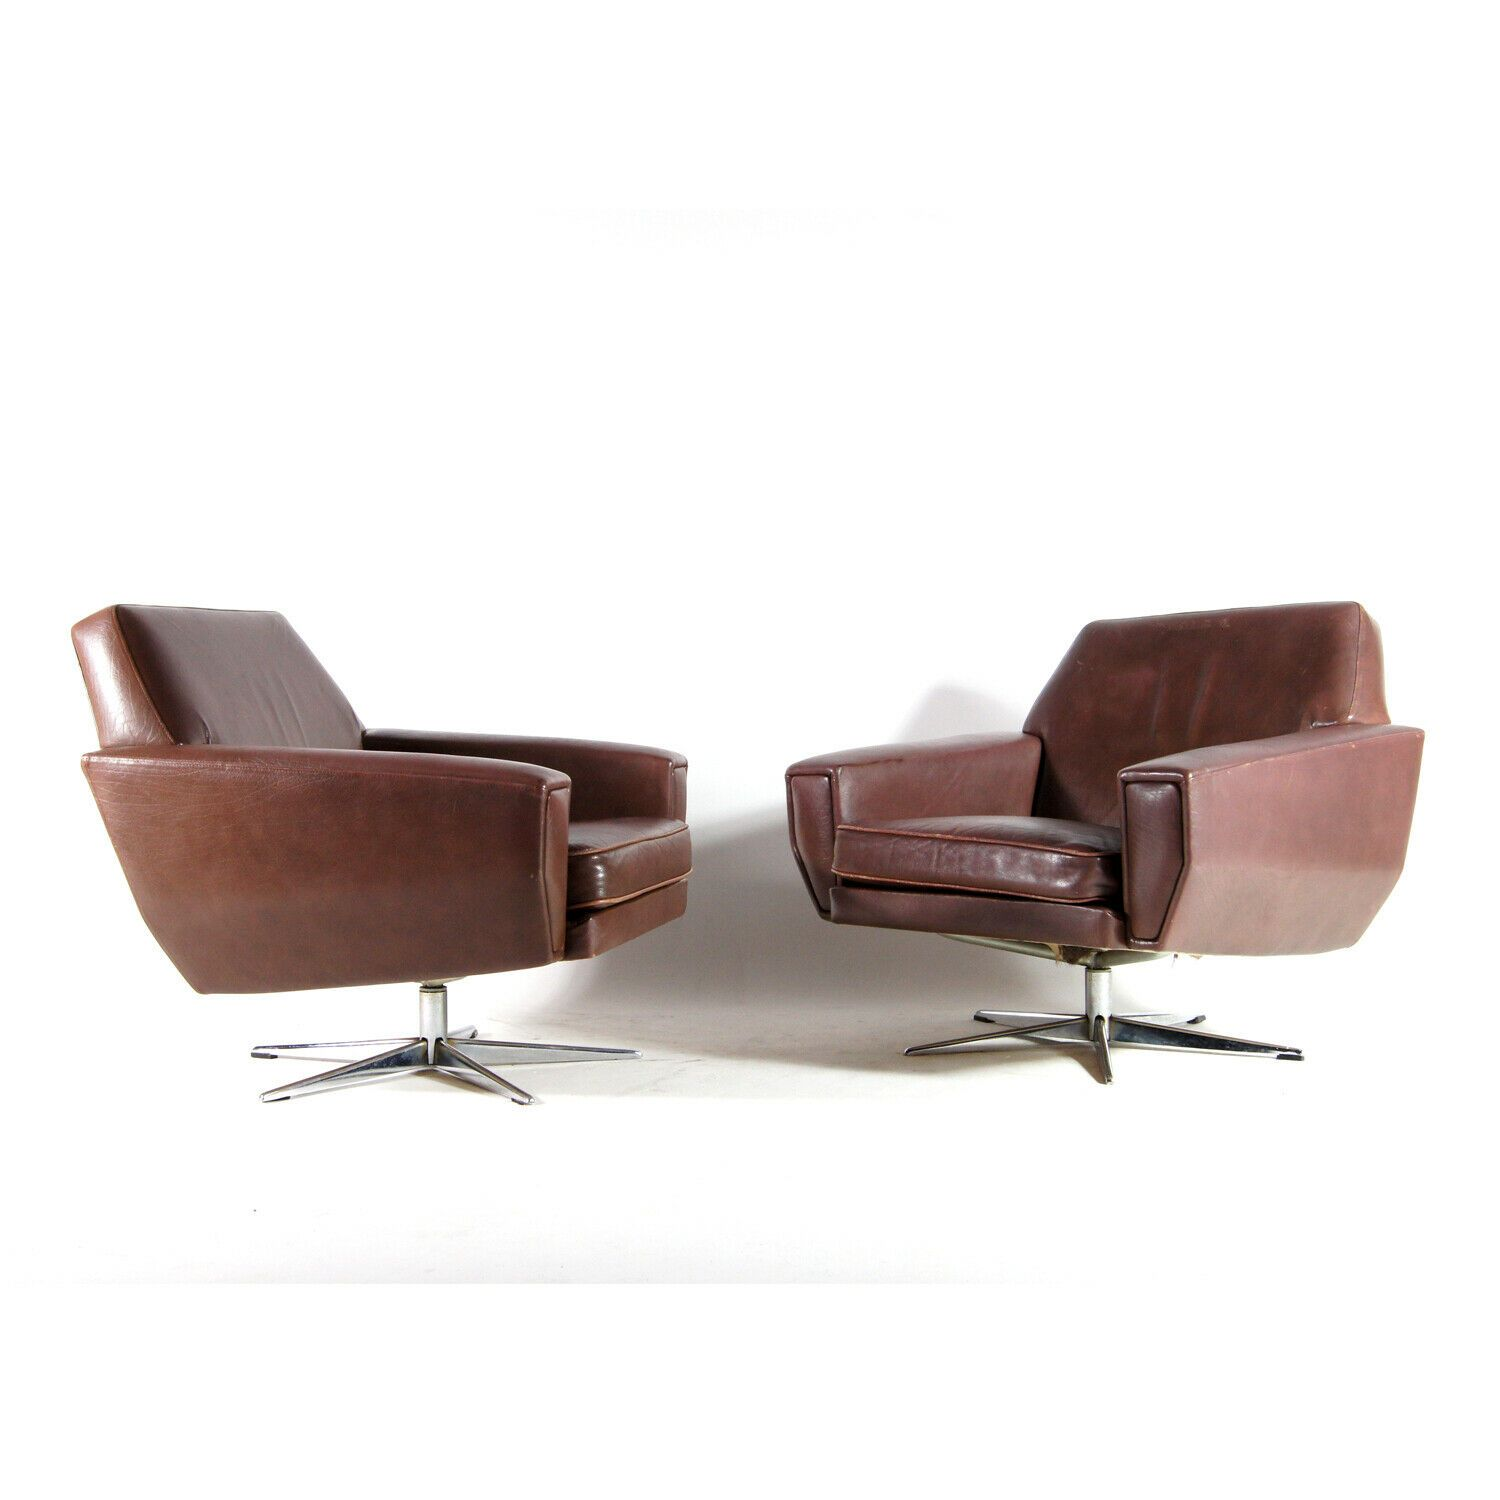 Danish Leather Armchair Danish Leather Armchair Leather Armchair Low Chair